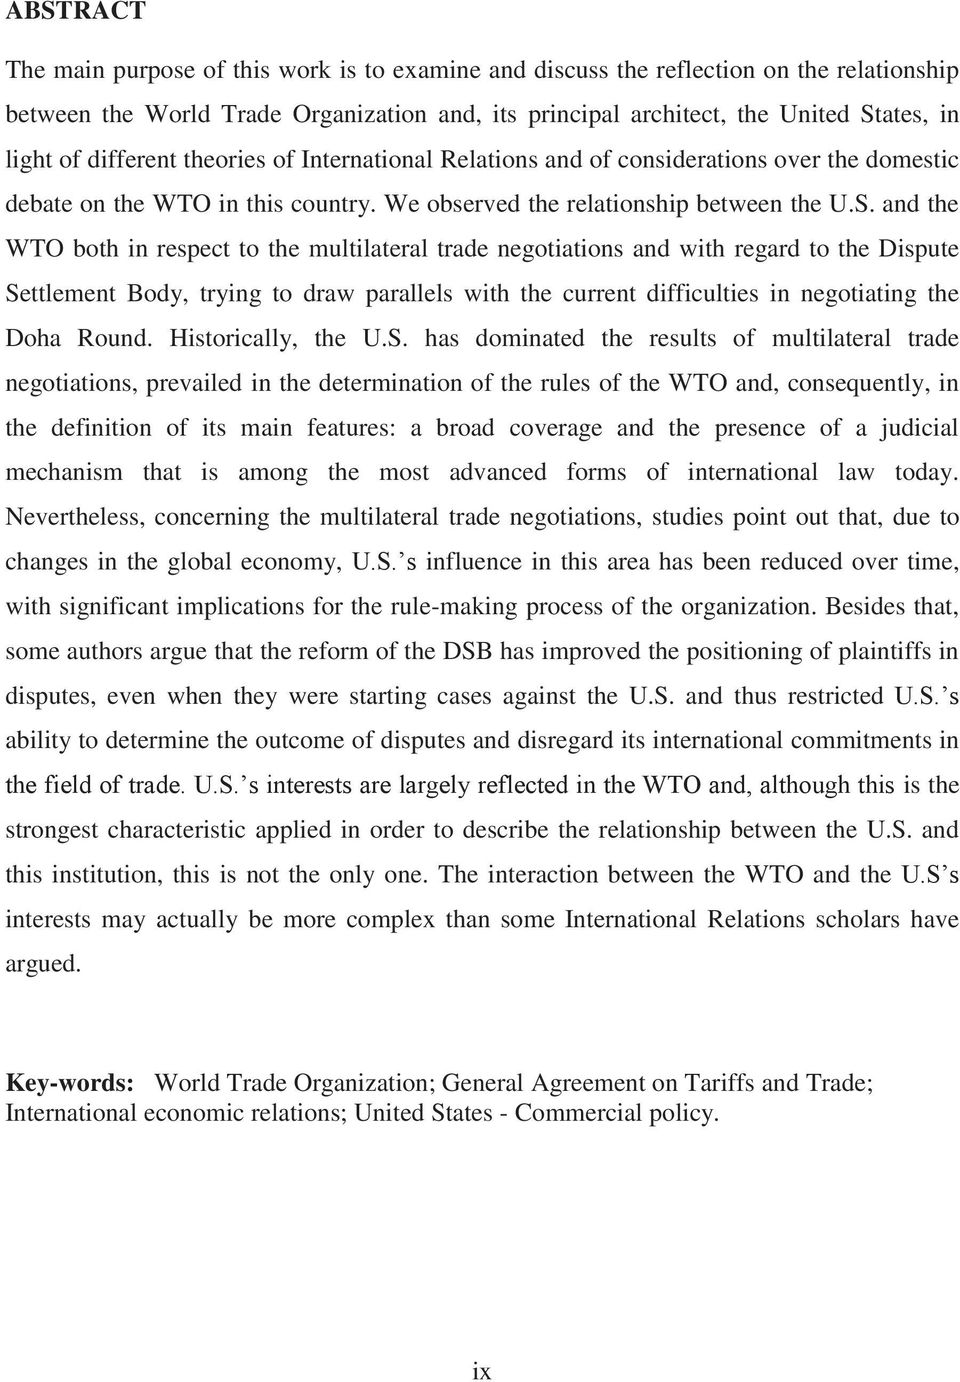 and the WTO both in respect to the multilateral trade negotiations and with regard to the Dispute Settlement Body, trying to draw parallels with the current difficulties in negotiating the Doha Round.